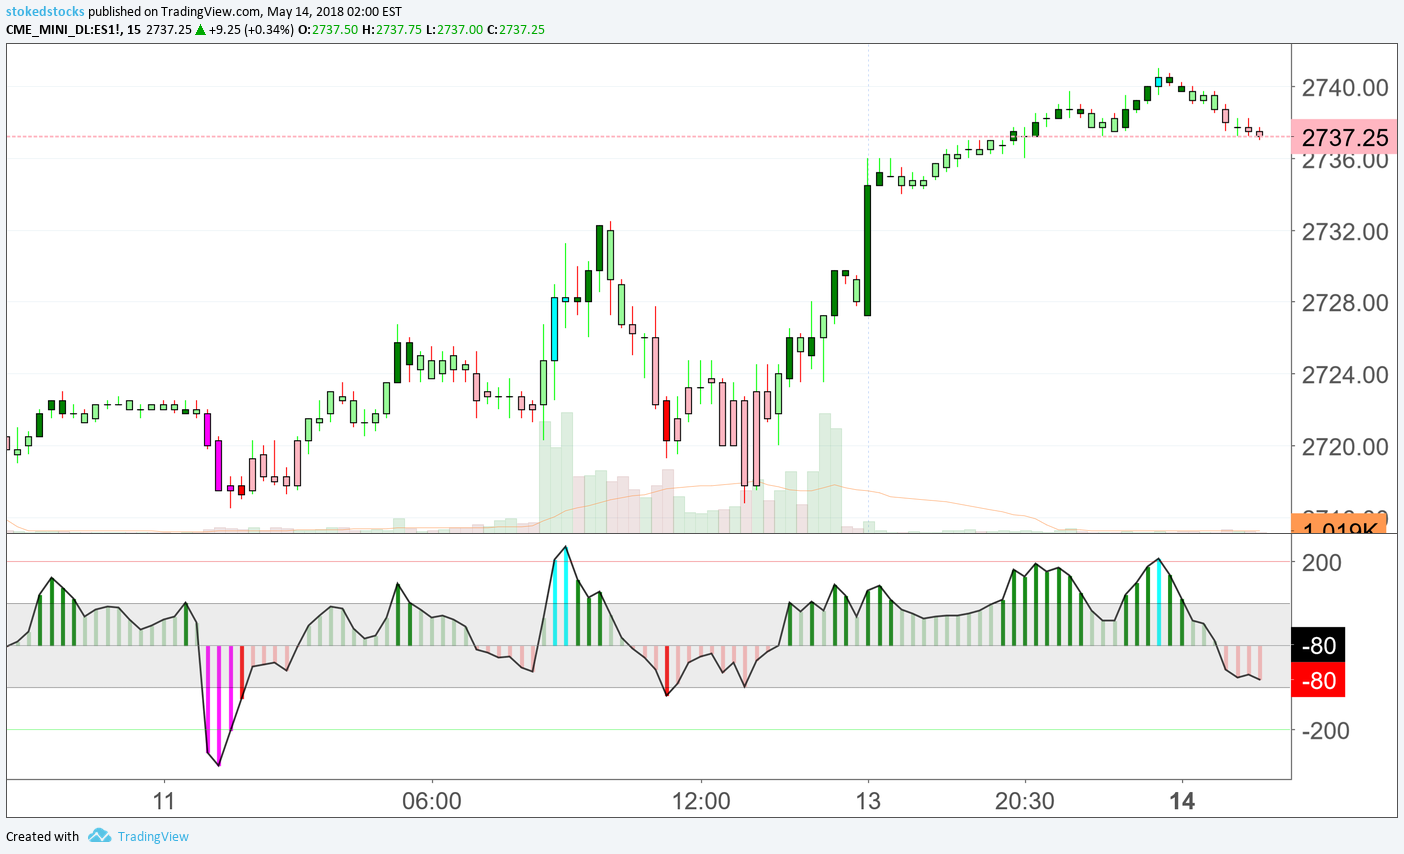 NEW Indicator: CCI Colored Candles / Bars w/ Histogram for